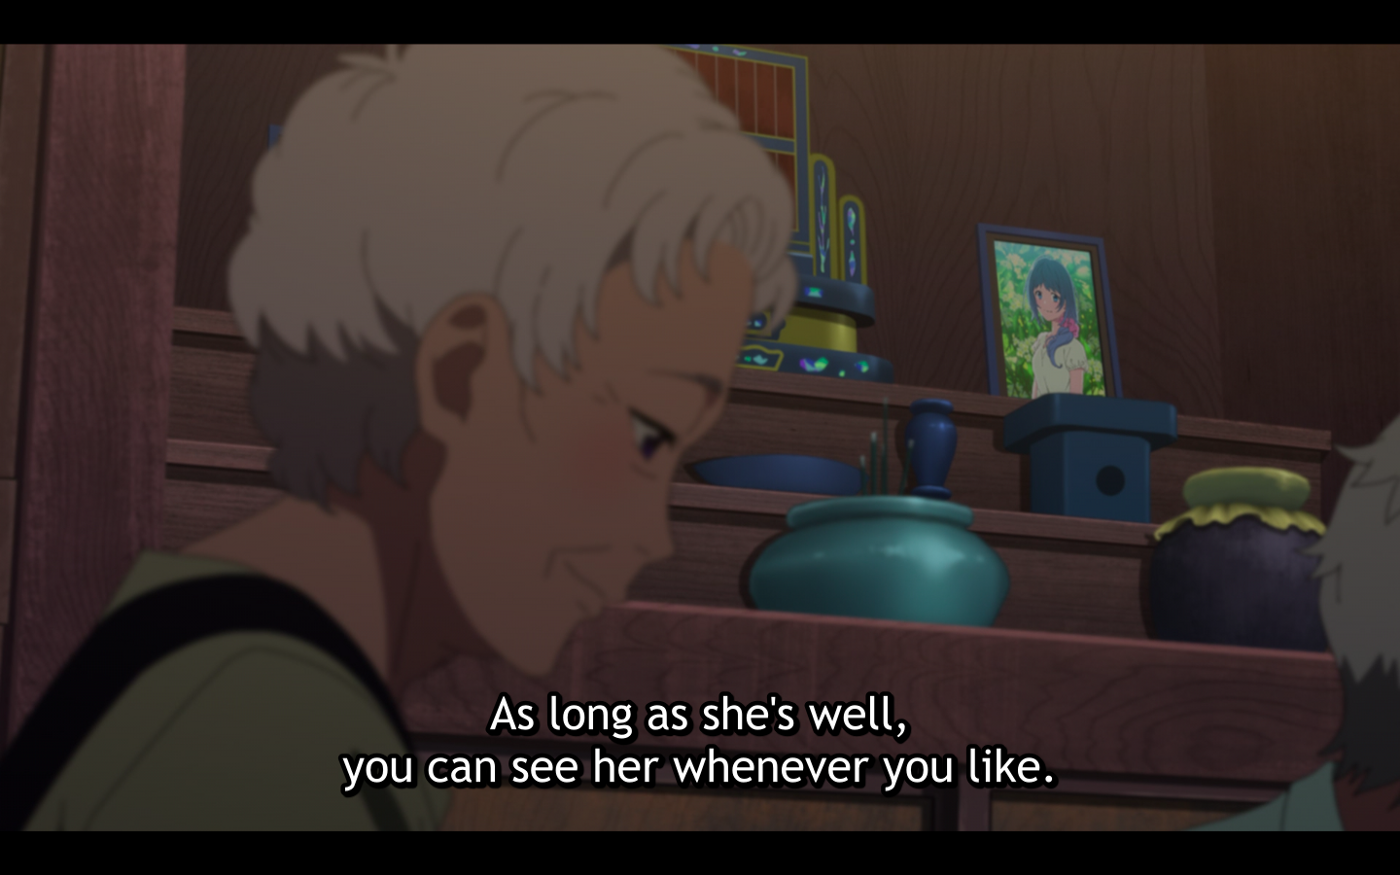 Kukuru's grandmother is telling Fuuka's mother that she will be able to see Fuuka as long as she is alive and well. In the background, there is a photo of Kukuru's deceased mother.